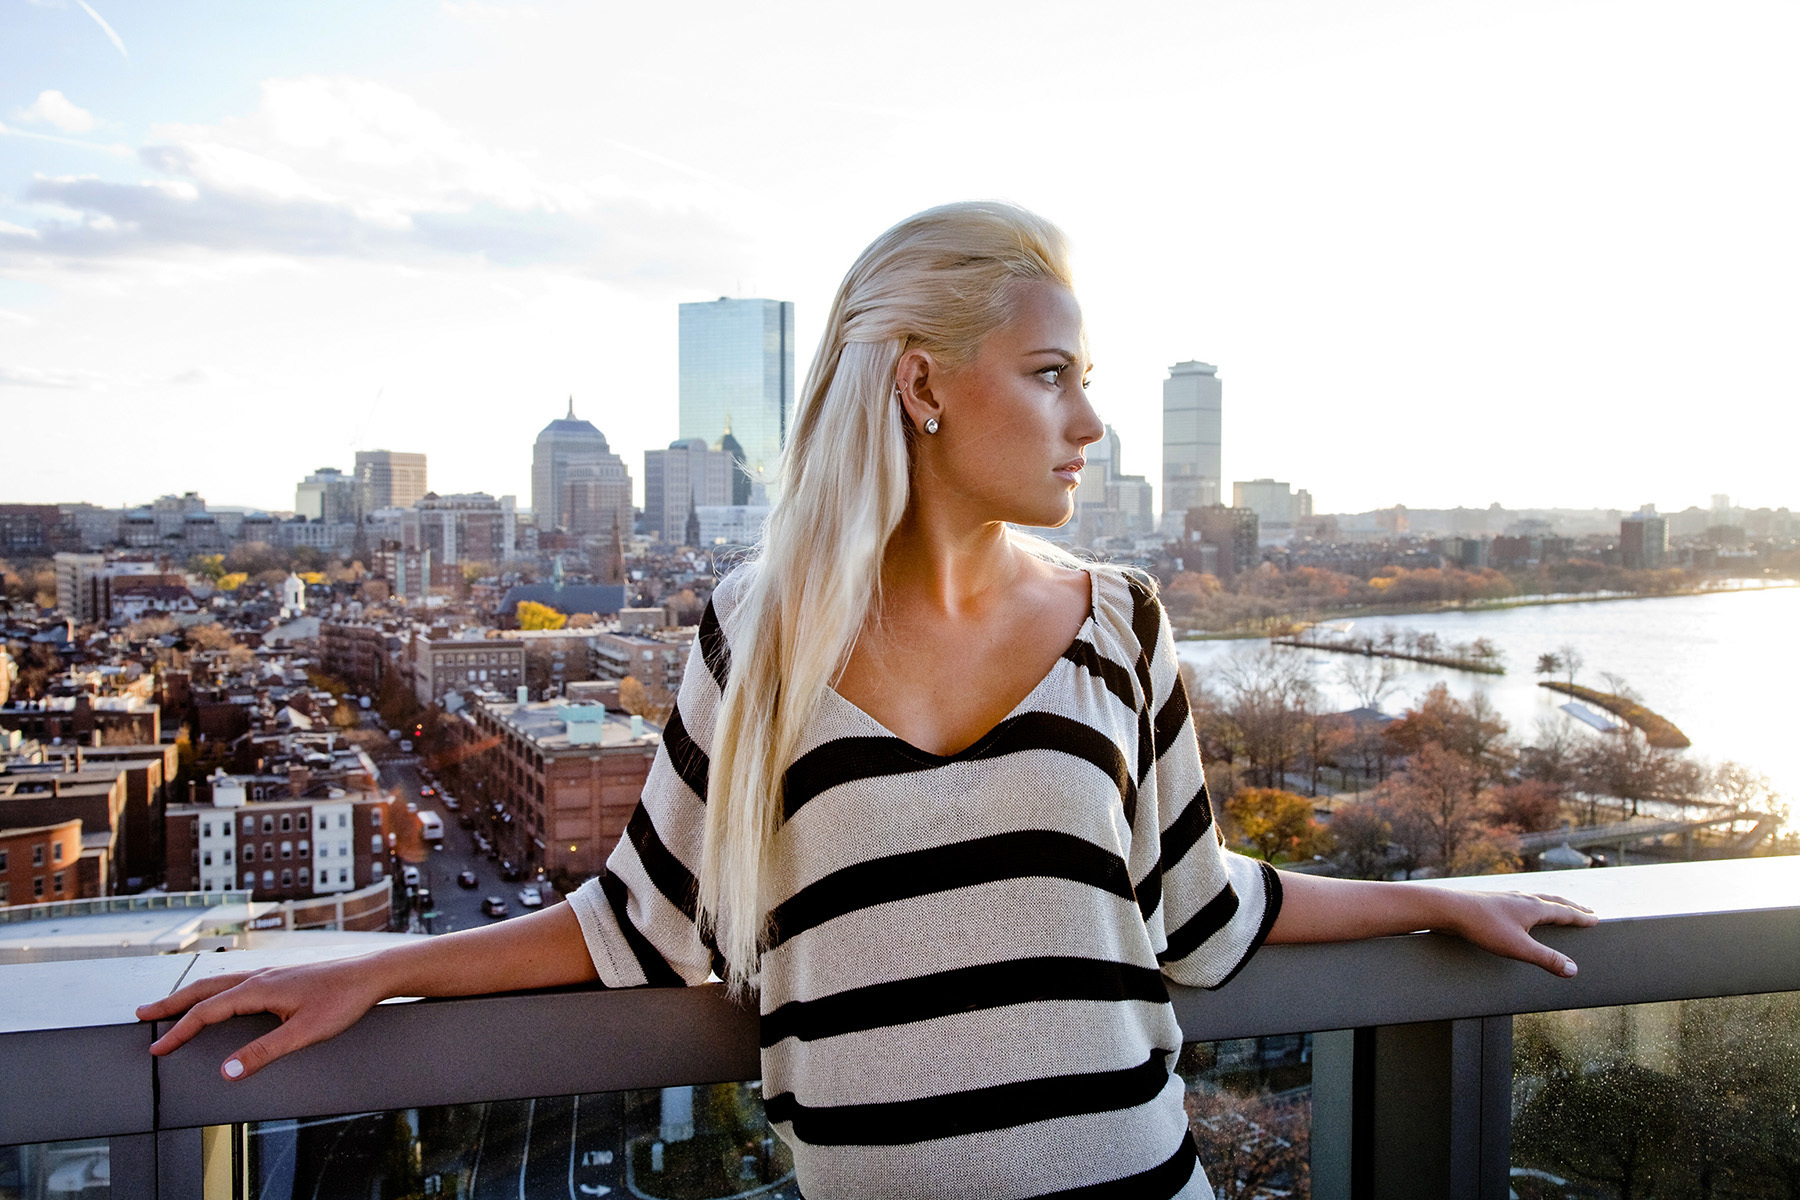 Boston Fashion Editorial magazine portrait